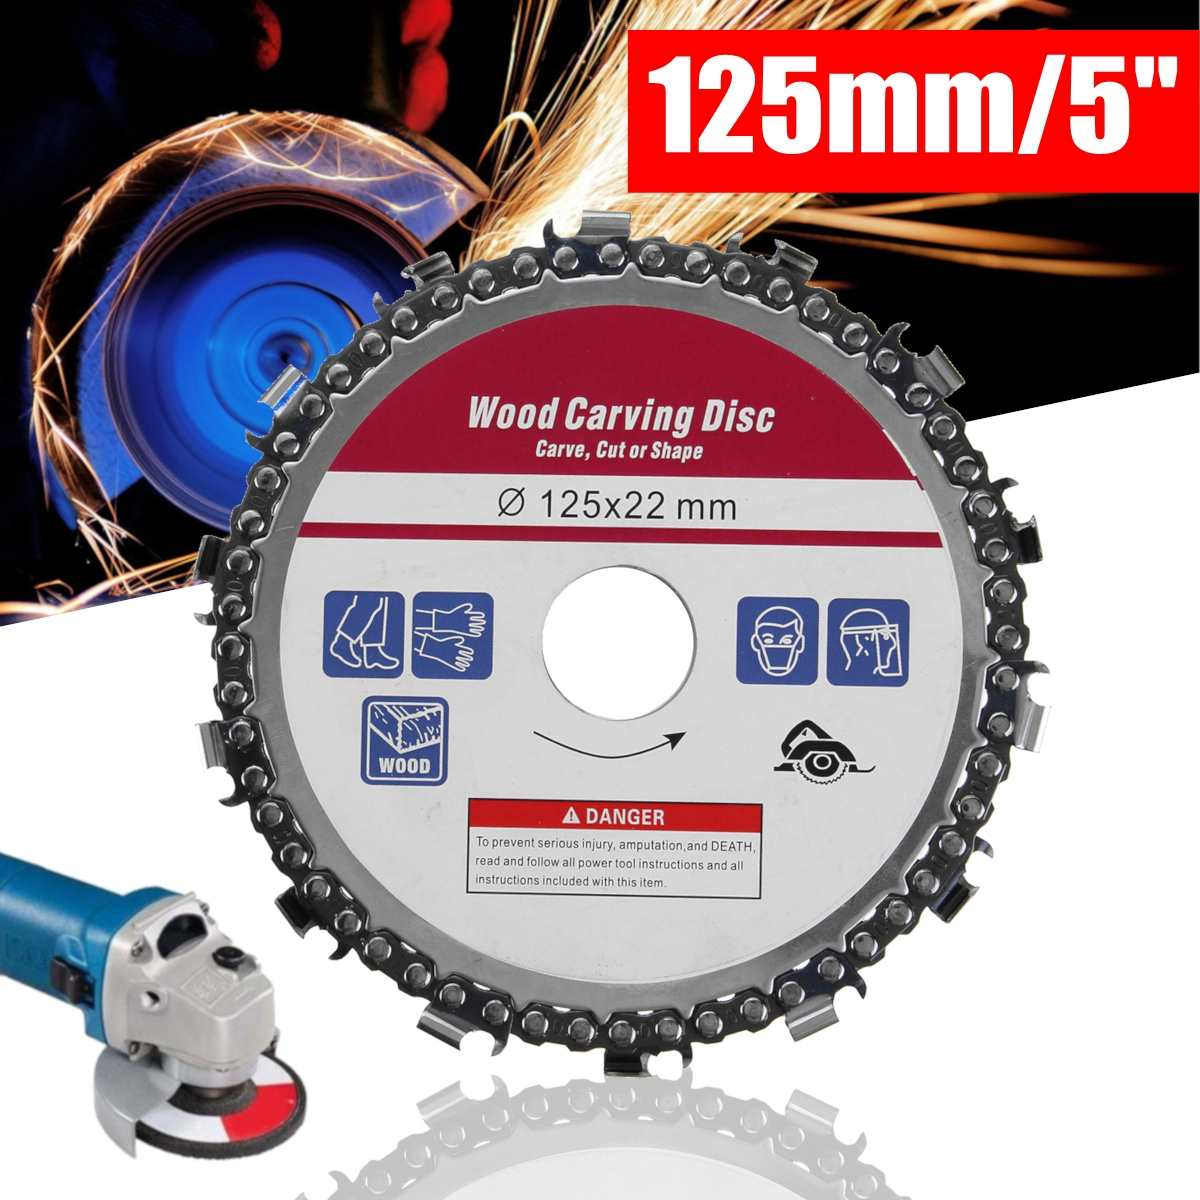 Doersupp Upgrade 5 Inch Grinder Disc And Chain 14 Tooth Fine Abrasive Cut Chain For 125mm Angle Grinder